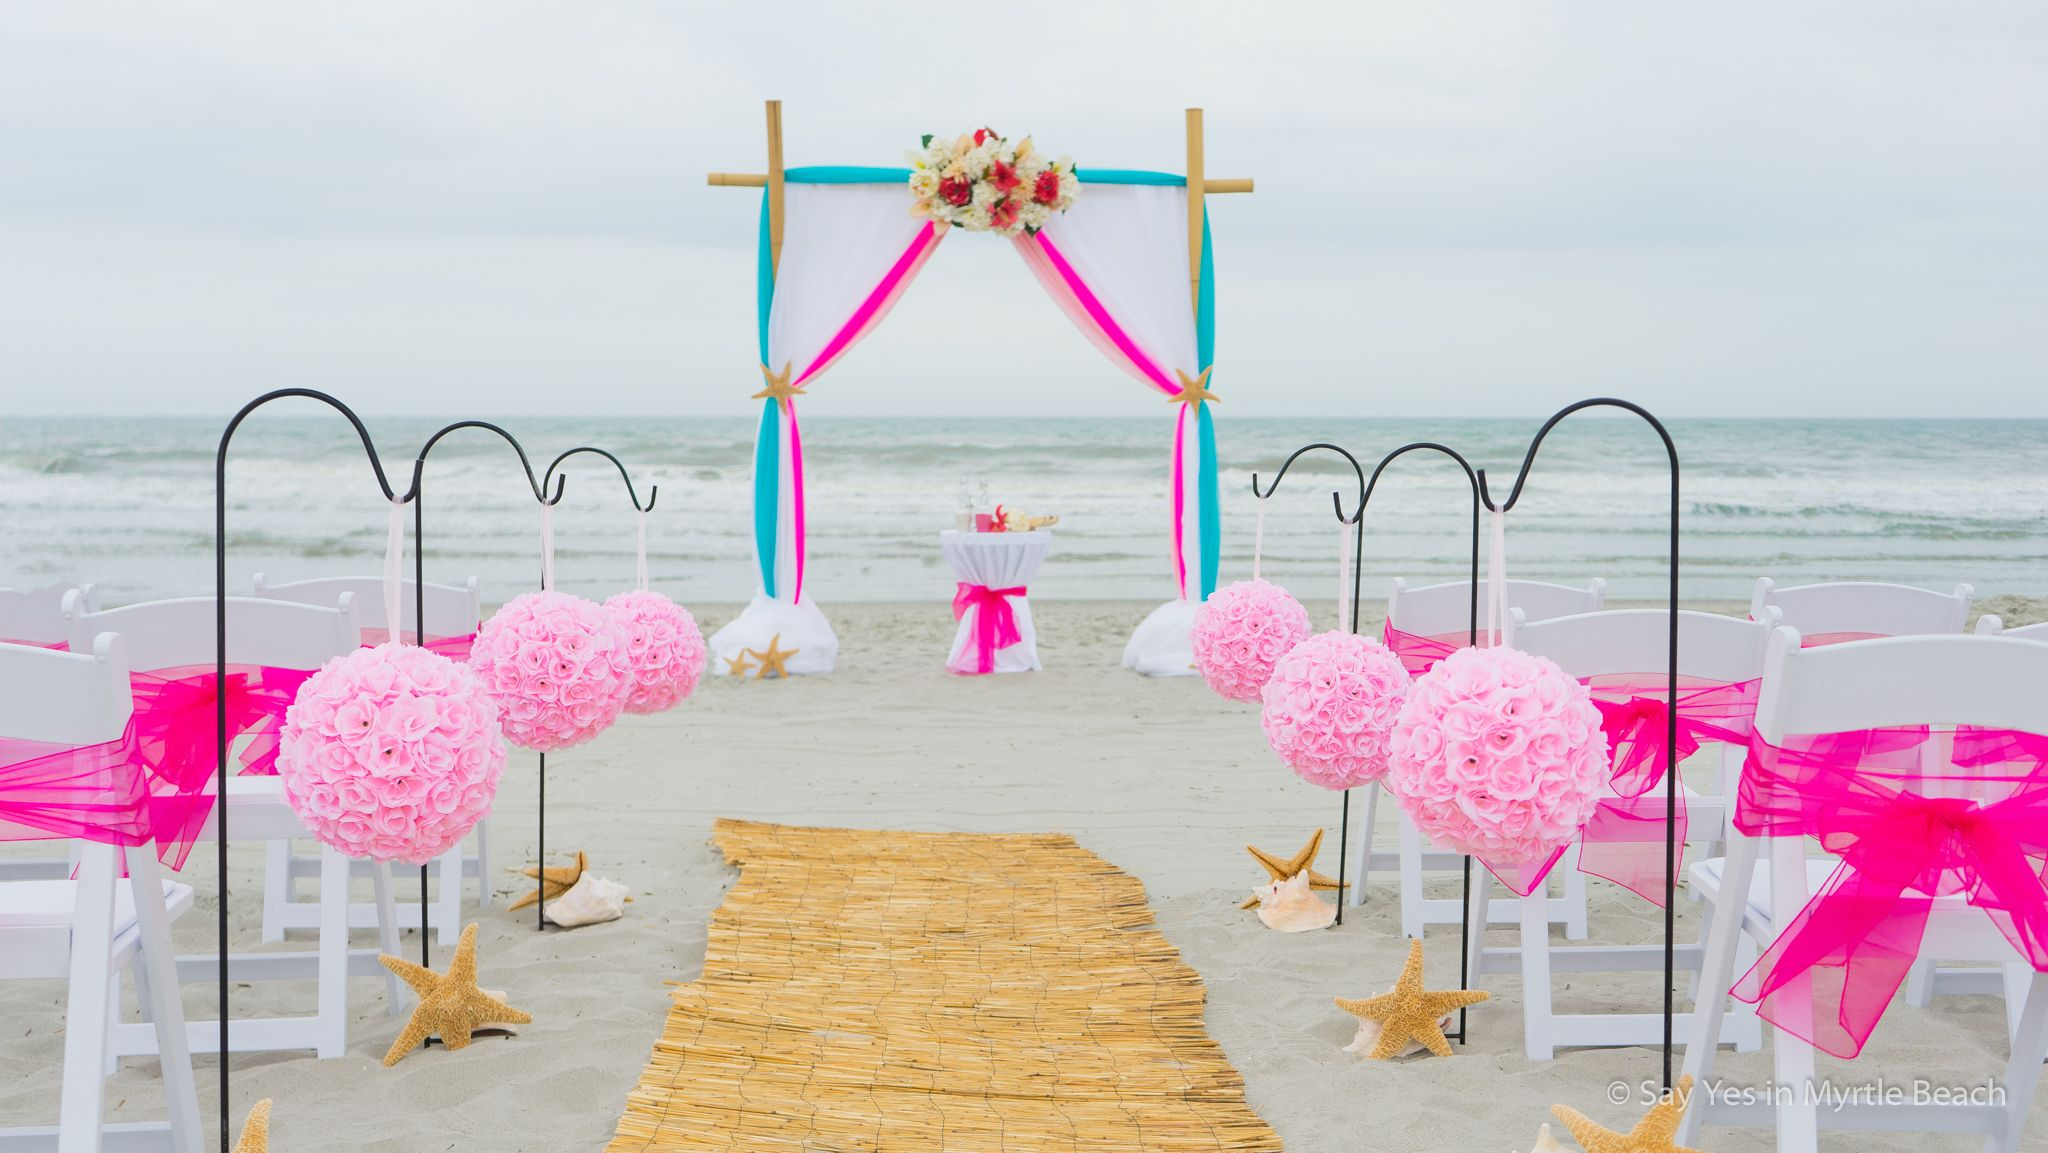 Myrtle Beach Weddings and Wedding Packages https//www